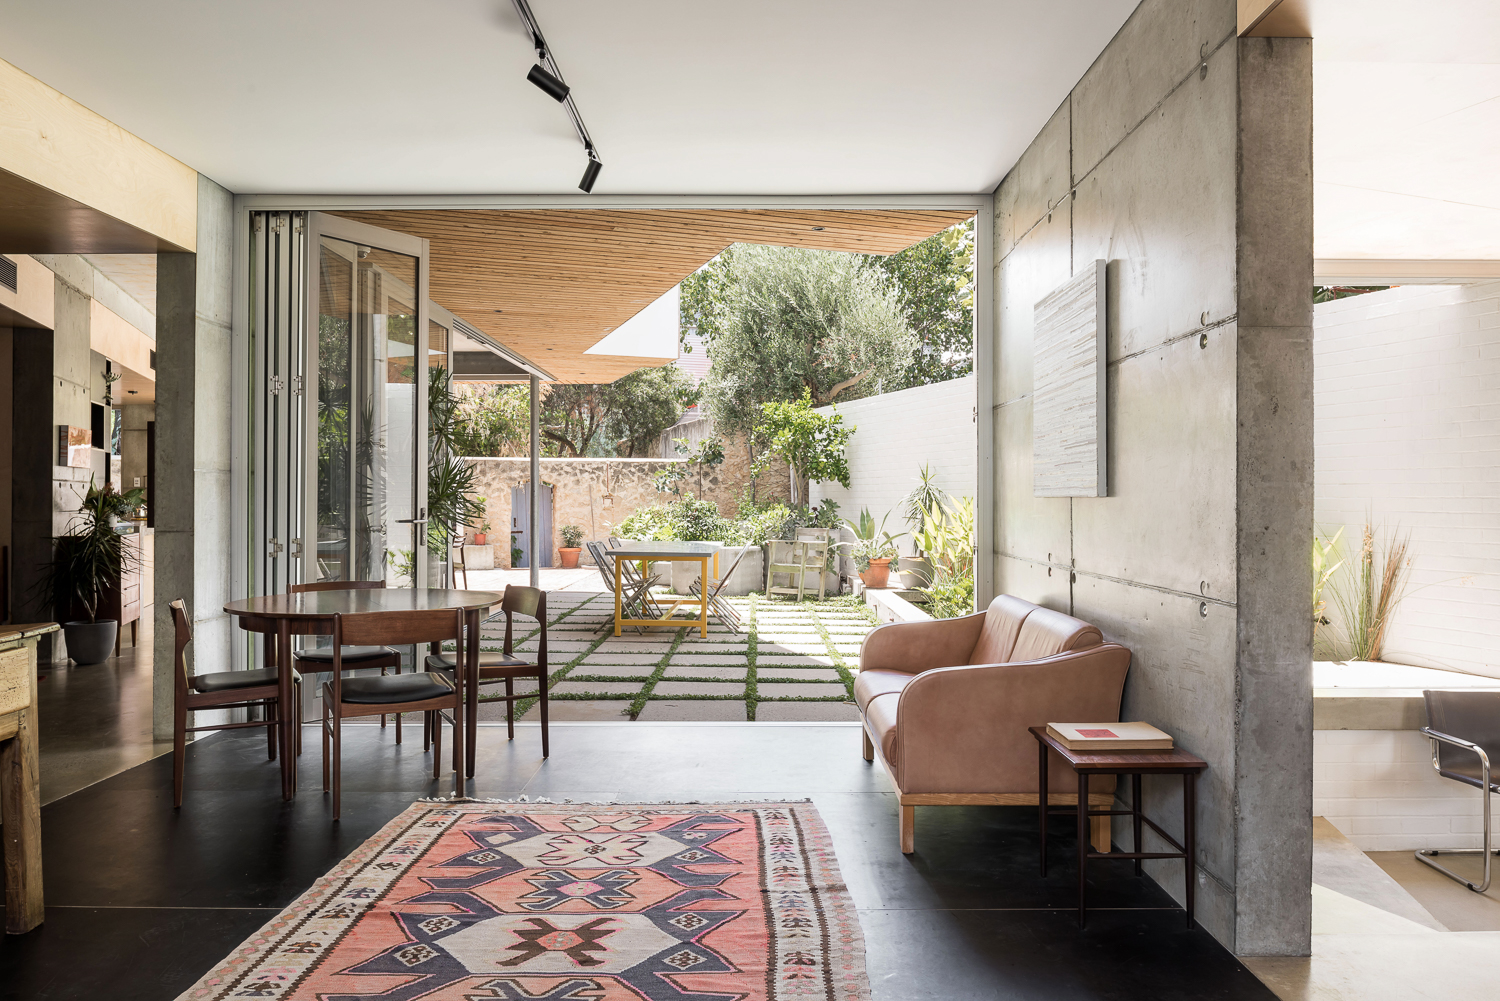 Gallery Of Silver Street House By Ehdo Architecture Local Design And Interiors South Fremantle, Wa Image 9